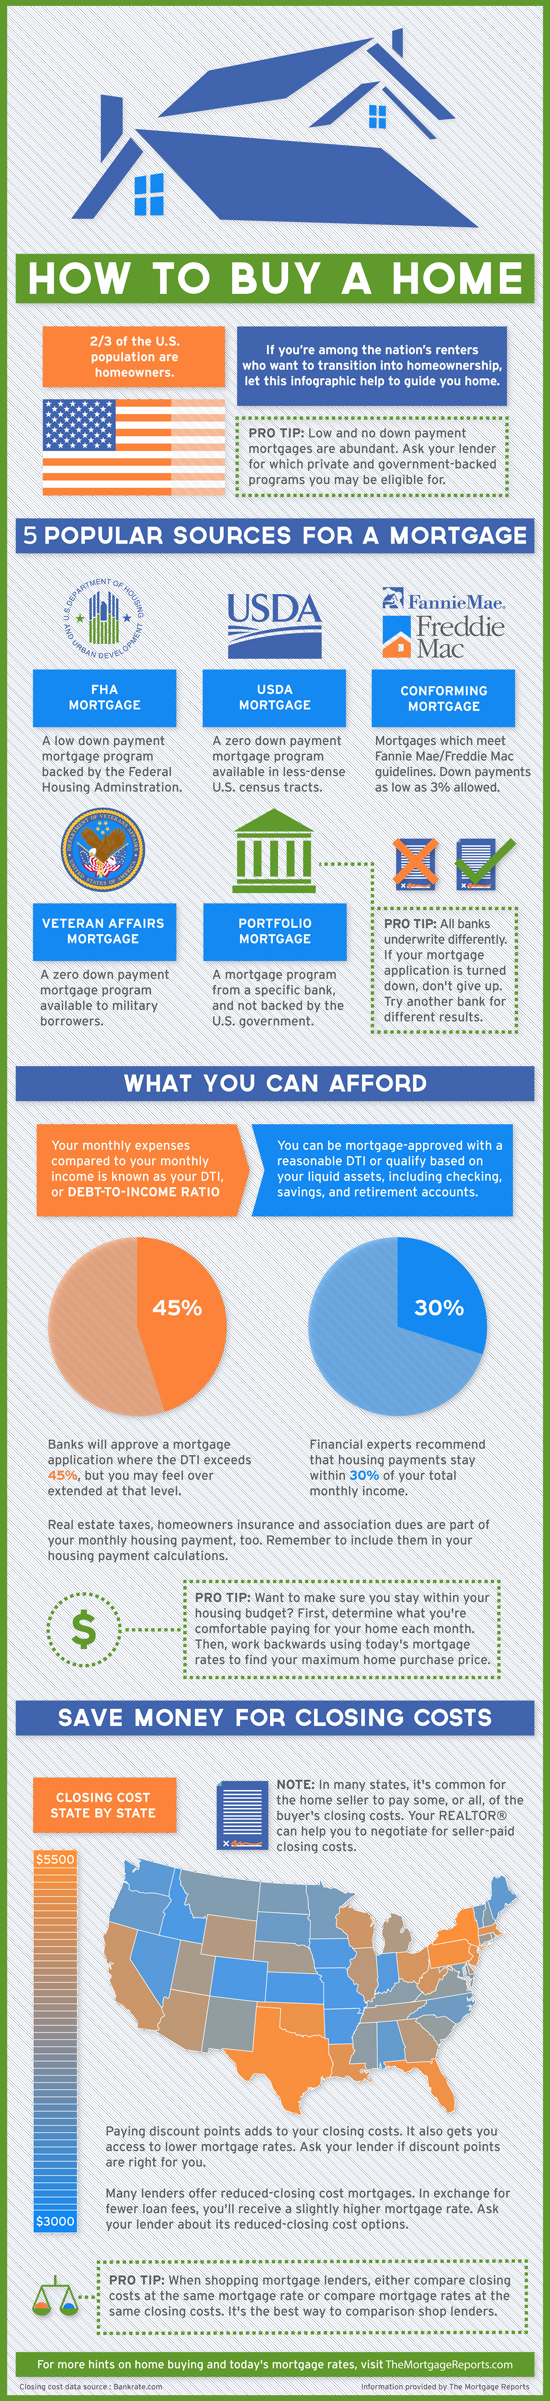 how-to-buy-a-home-infographic-the-mortgage-reports-550px